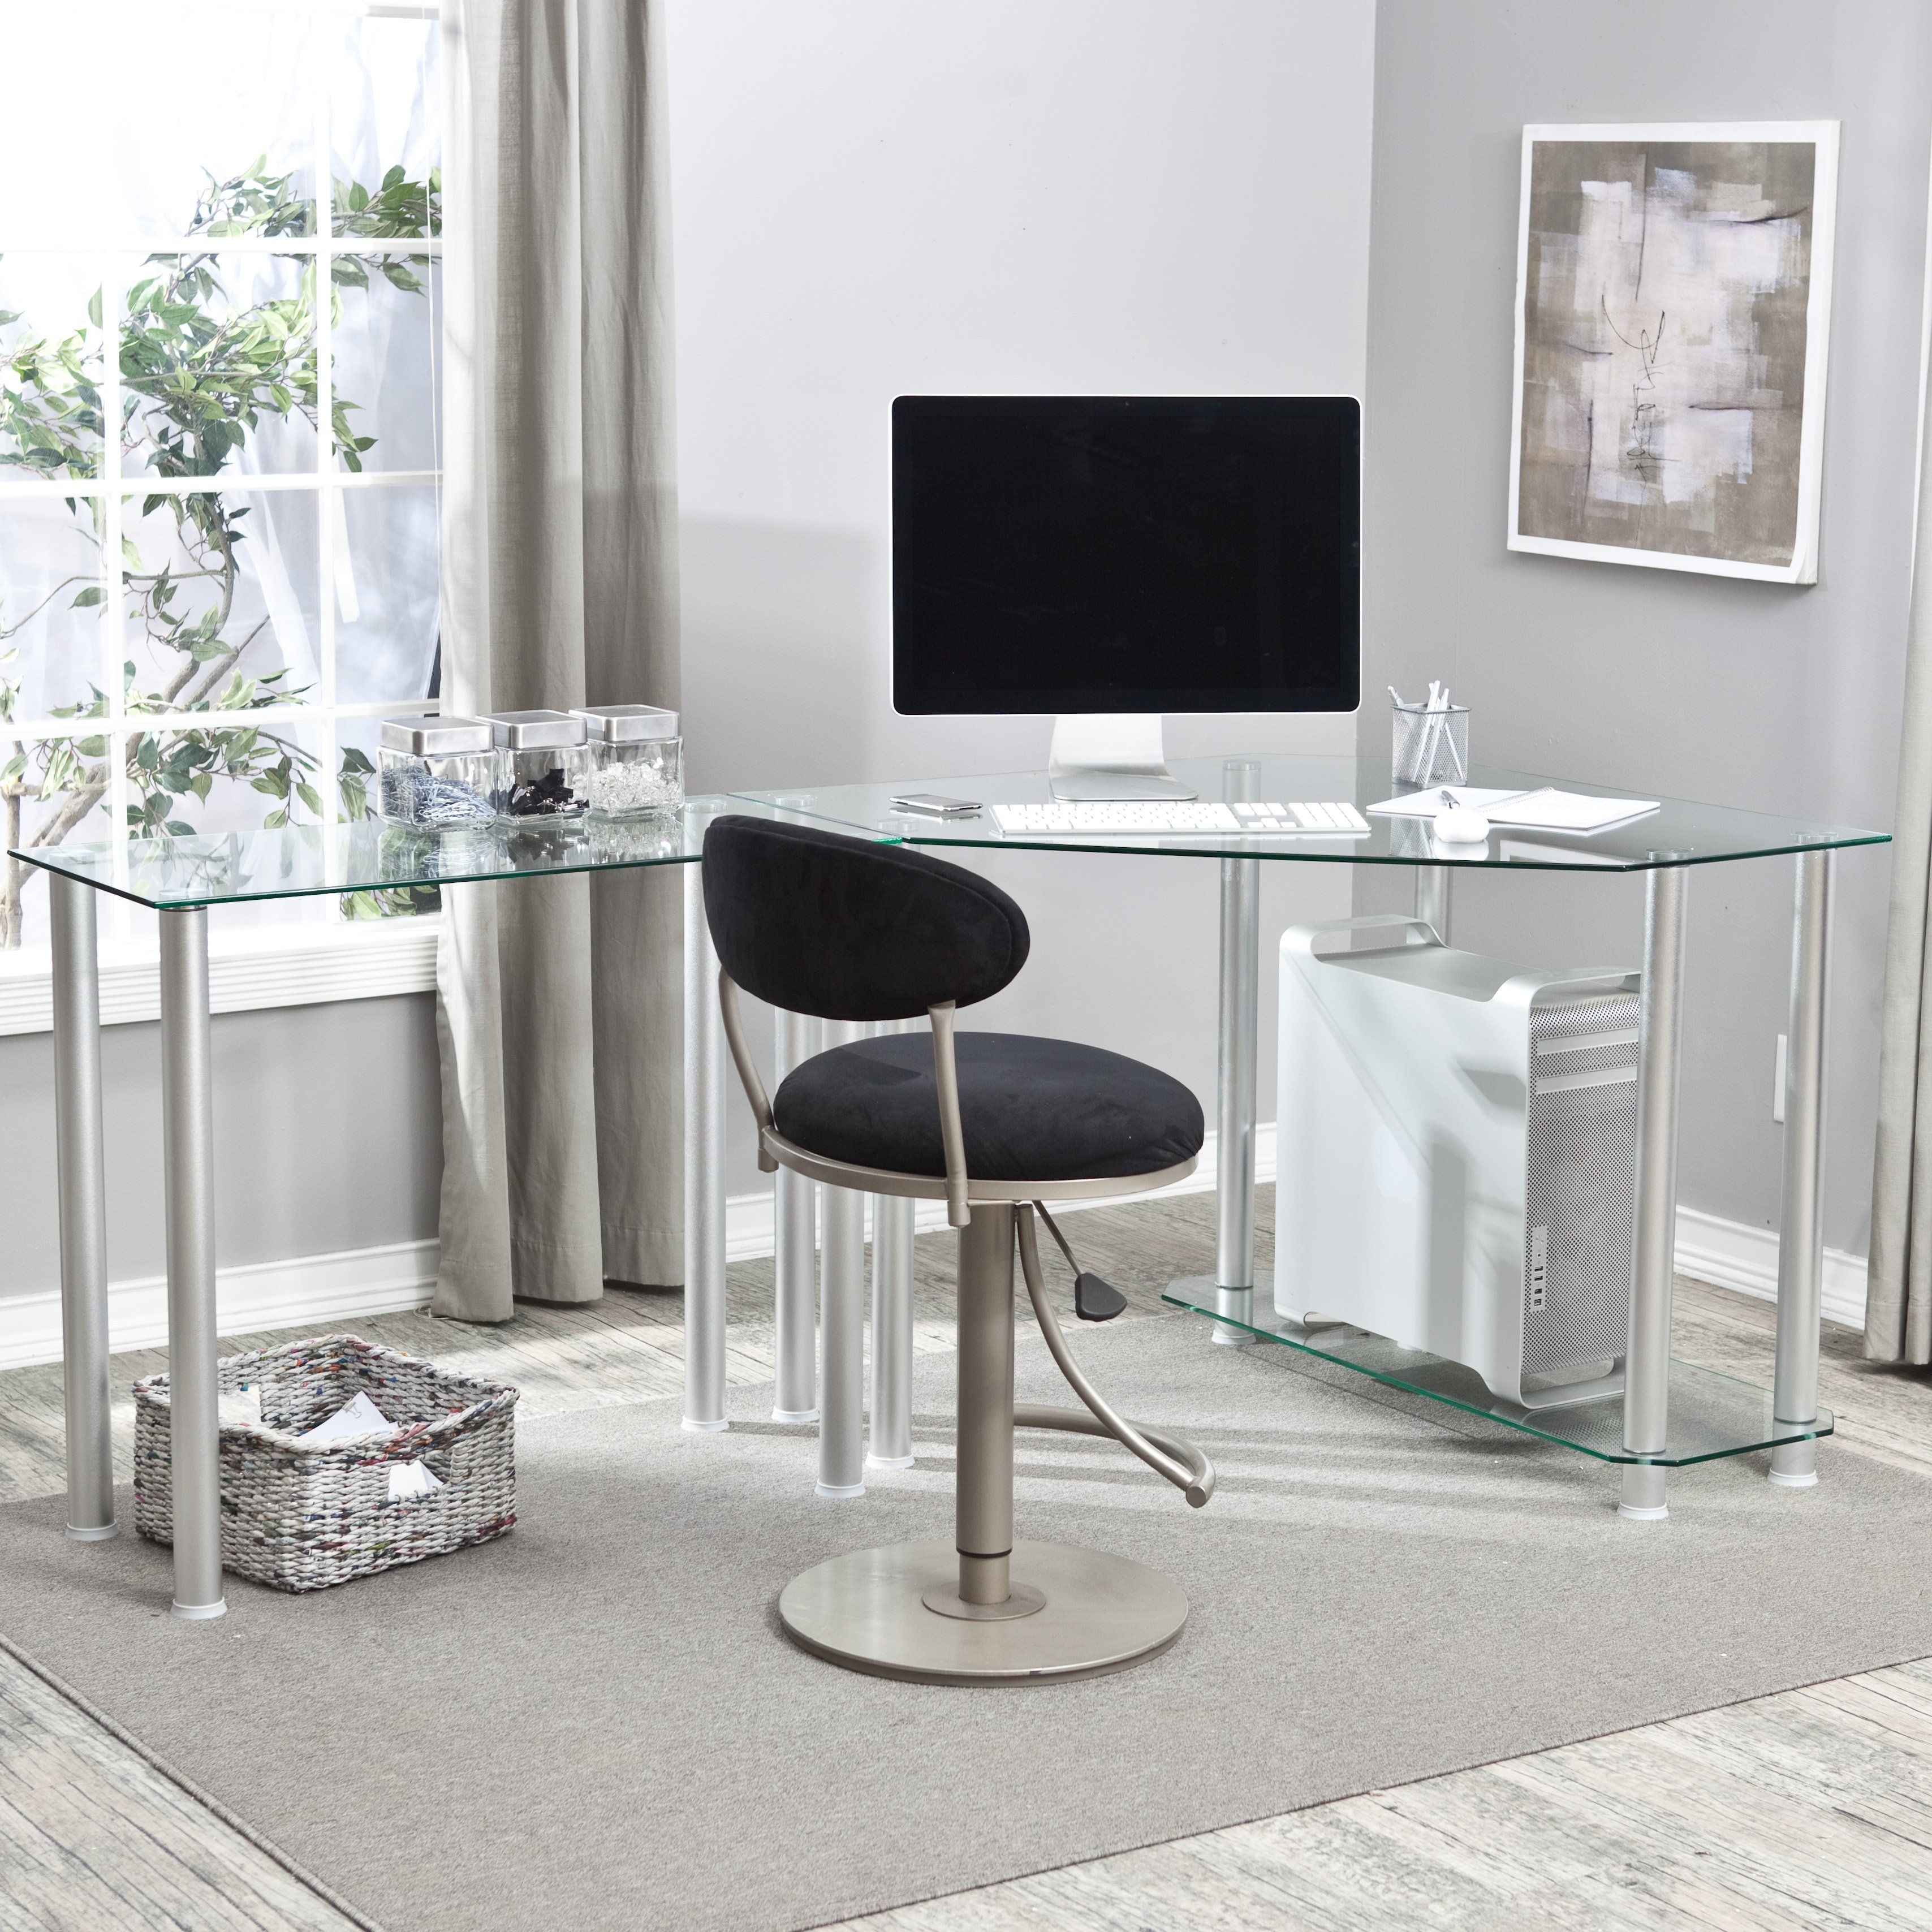 L Shaped Glass Computer Desk   Add Valuable Work Space While Taking  Advantage Of The Corner Space Of Your Office With The RTA Home And Office  Corner Glass ...